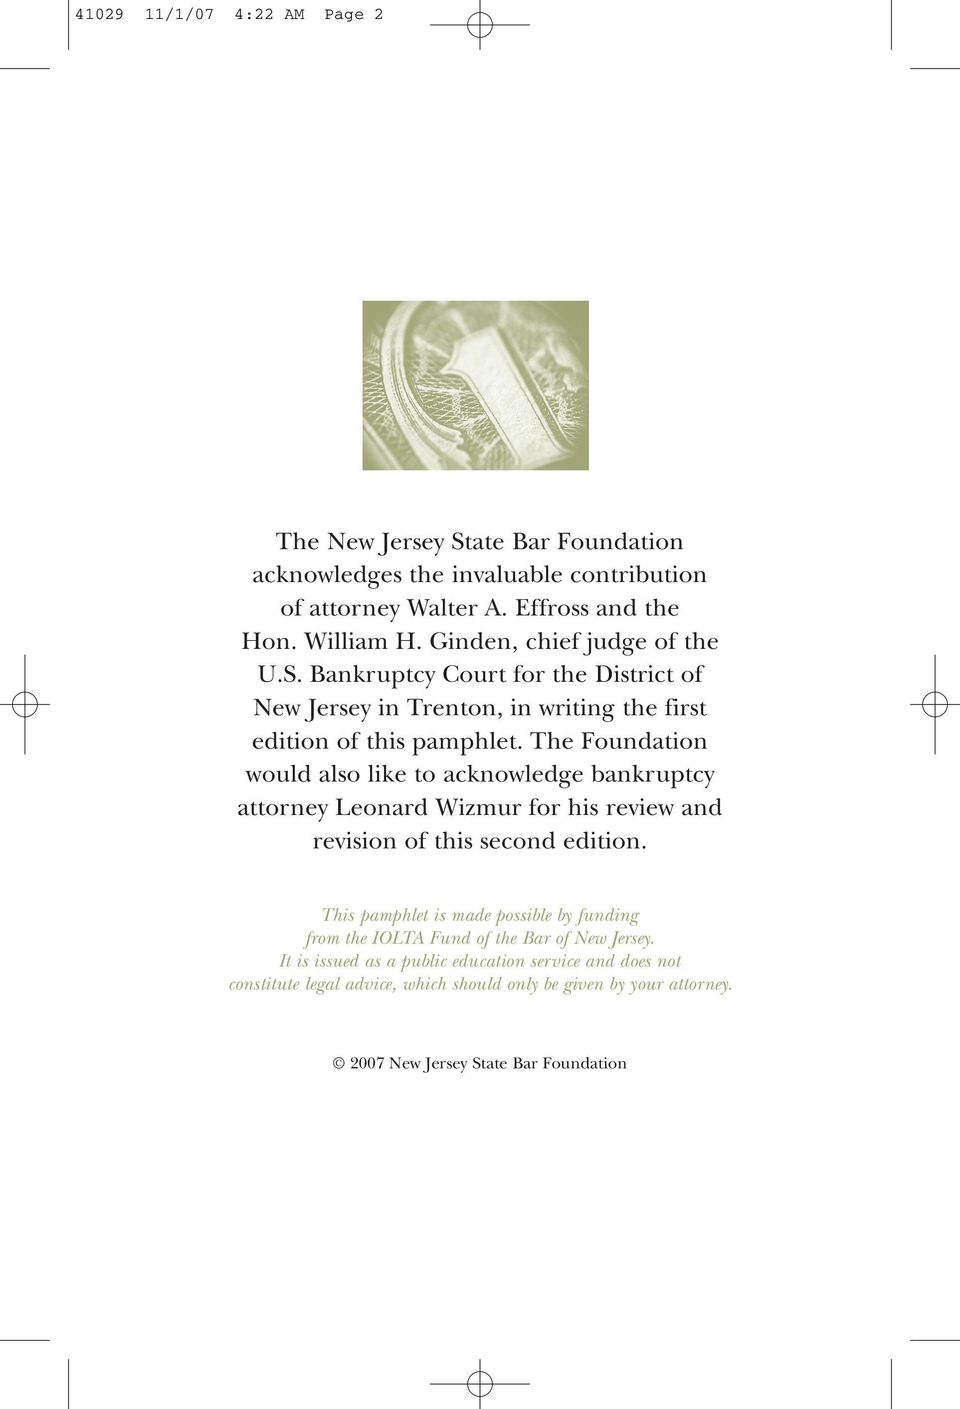 The Foundation would also like to acknowledge bankruptcy attorney Leonard Wizmur for his review and revision of this second edition.